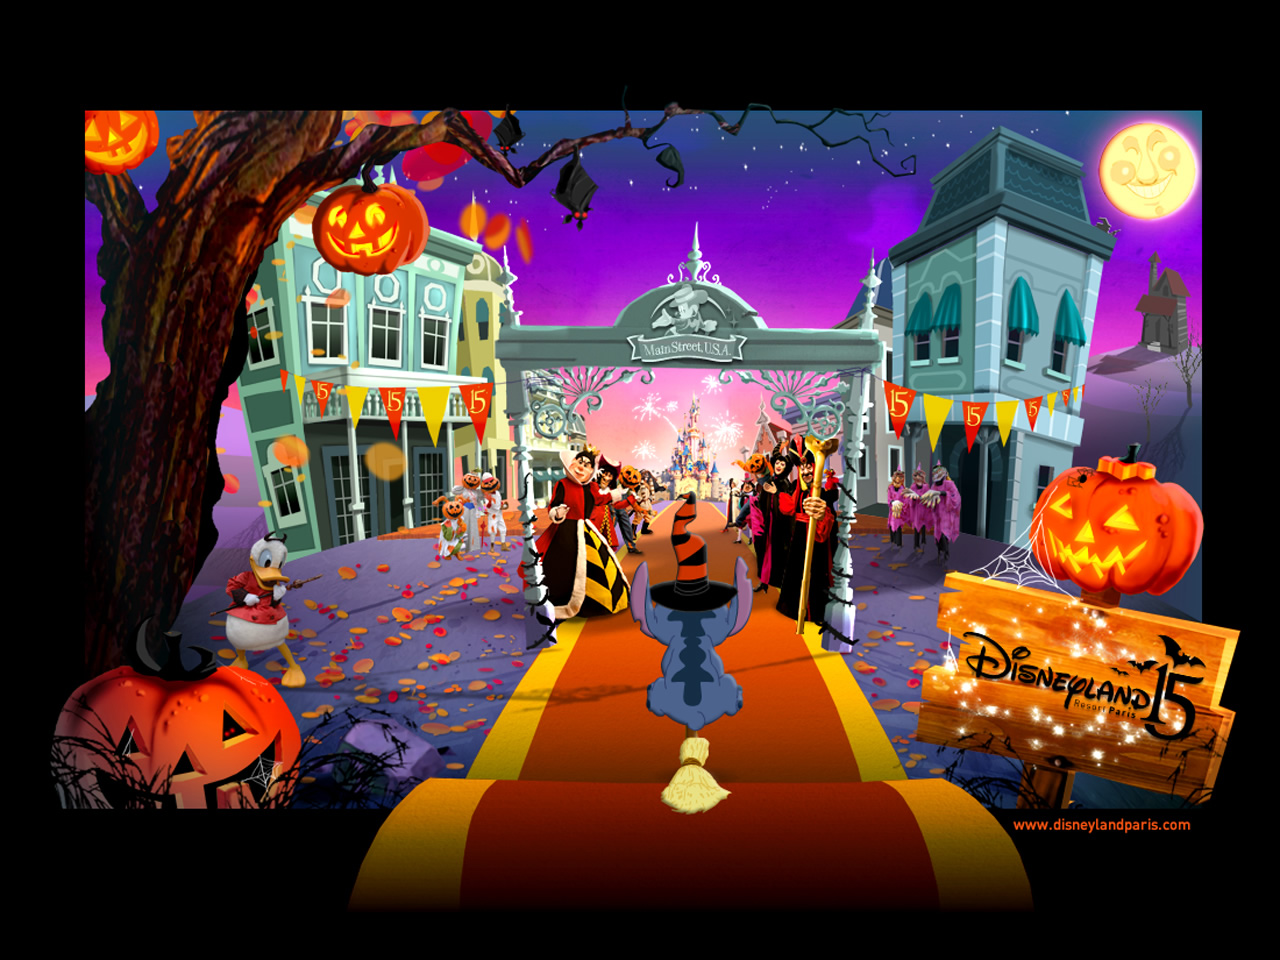 1280x960 Disney Halloween desktop PC and Mac wallpaper 1280x960